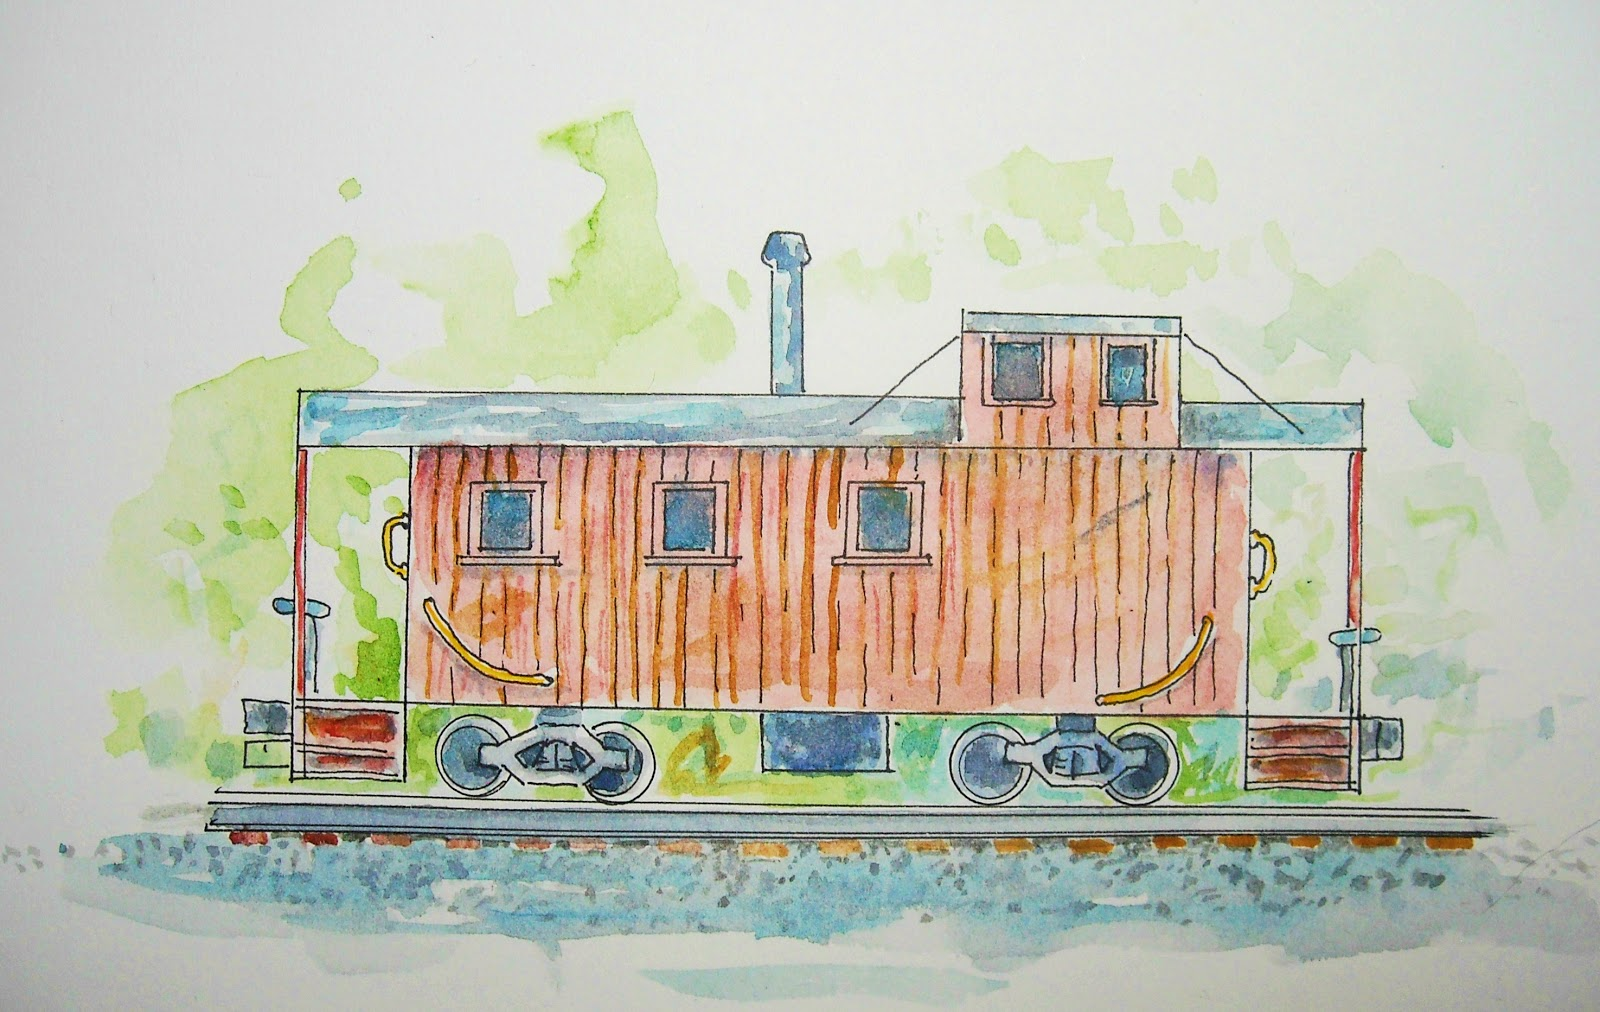 How To Draw Worksheets For The Young Artist How To Draw A Train Caboose Worksheet And Lesson